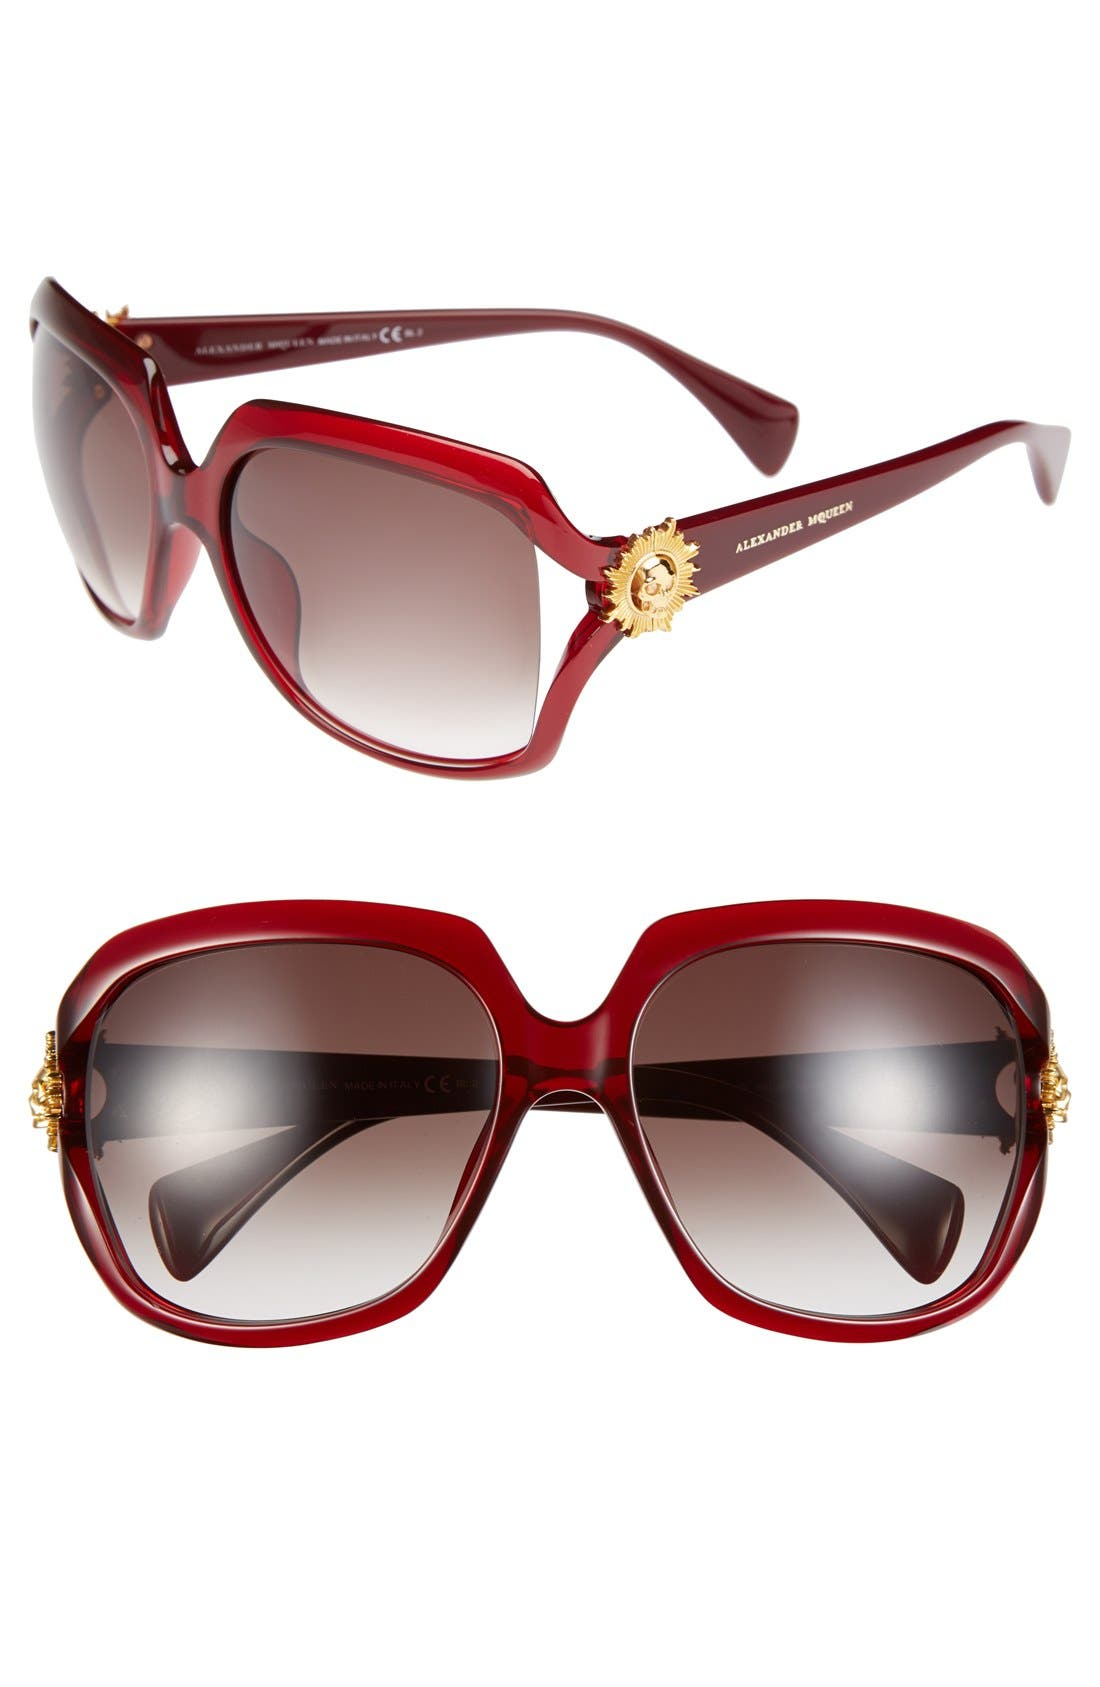 Main Image - Alexander McQueen 59mm Sunglasses